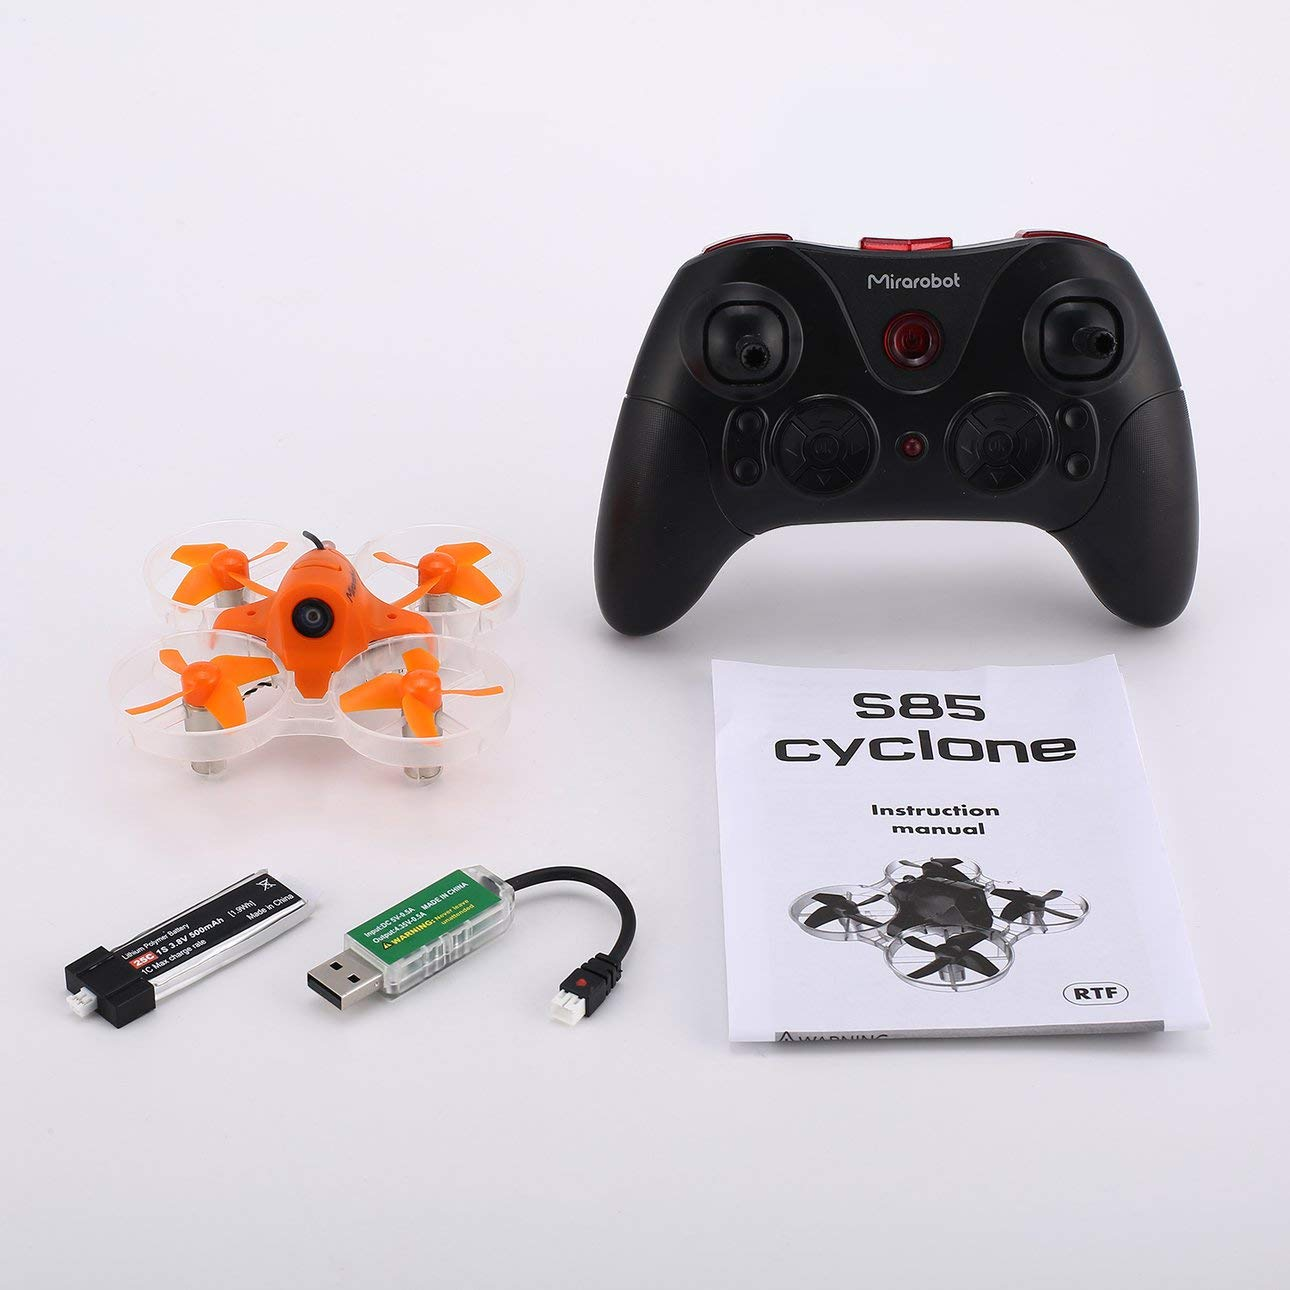 Liobaba Mirarobot S85 5.8G Mini Micro High Speed RC FPV Racing Quadcopter Drone Aircraft 5mW 600TVL Camera 3/6 axis Real-Time Orange